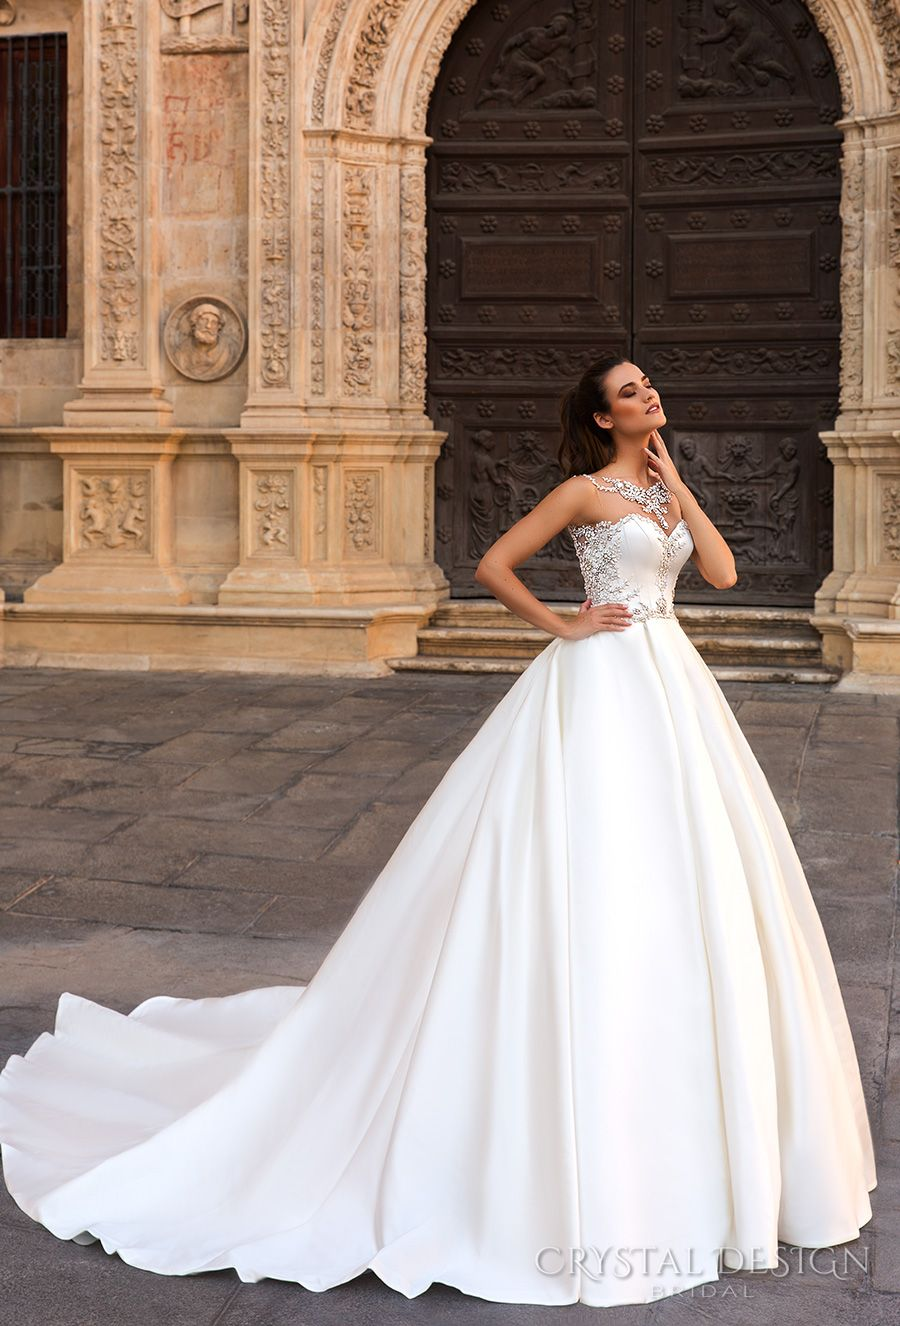 b759816f4 crystal design 2017 bridal sleeveless jewel sweetheart neckline heavily  embellished bodice beaded simple ball gown a line wedding dress open back  royal ...